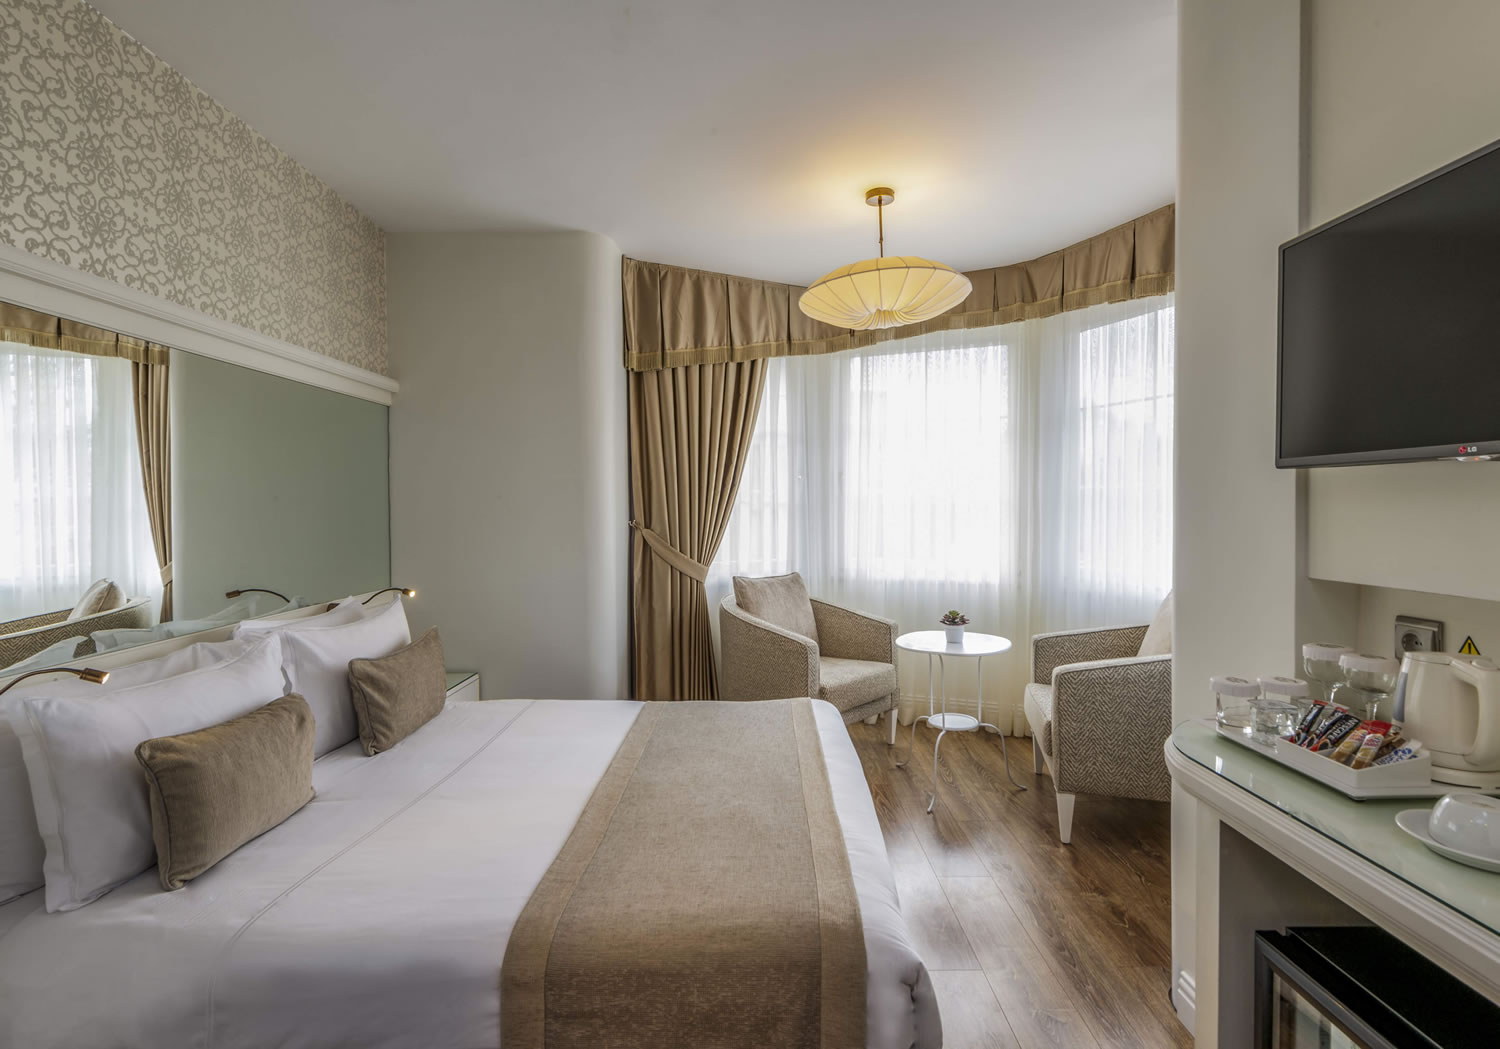 Deluxe double room with Hagia Sophia View 2